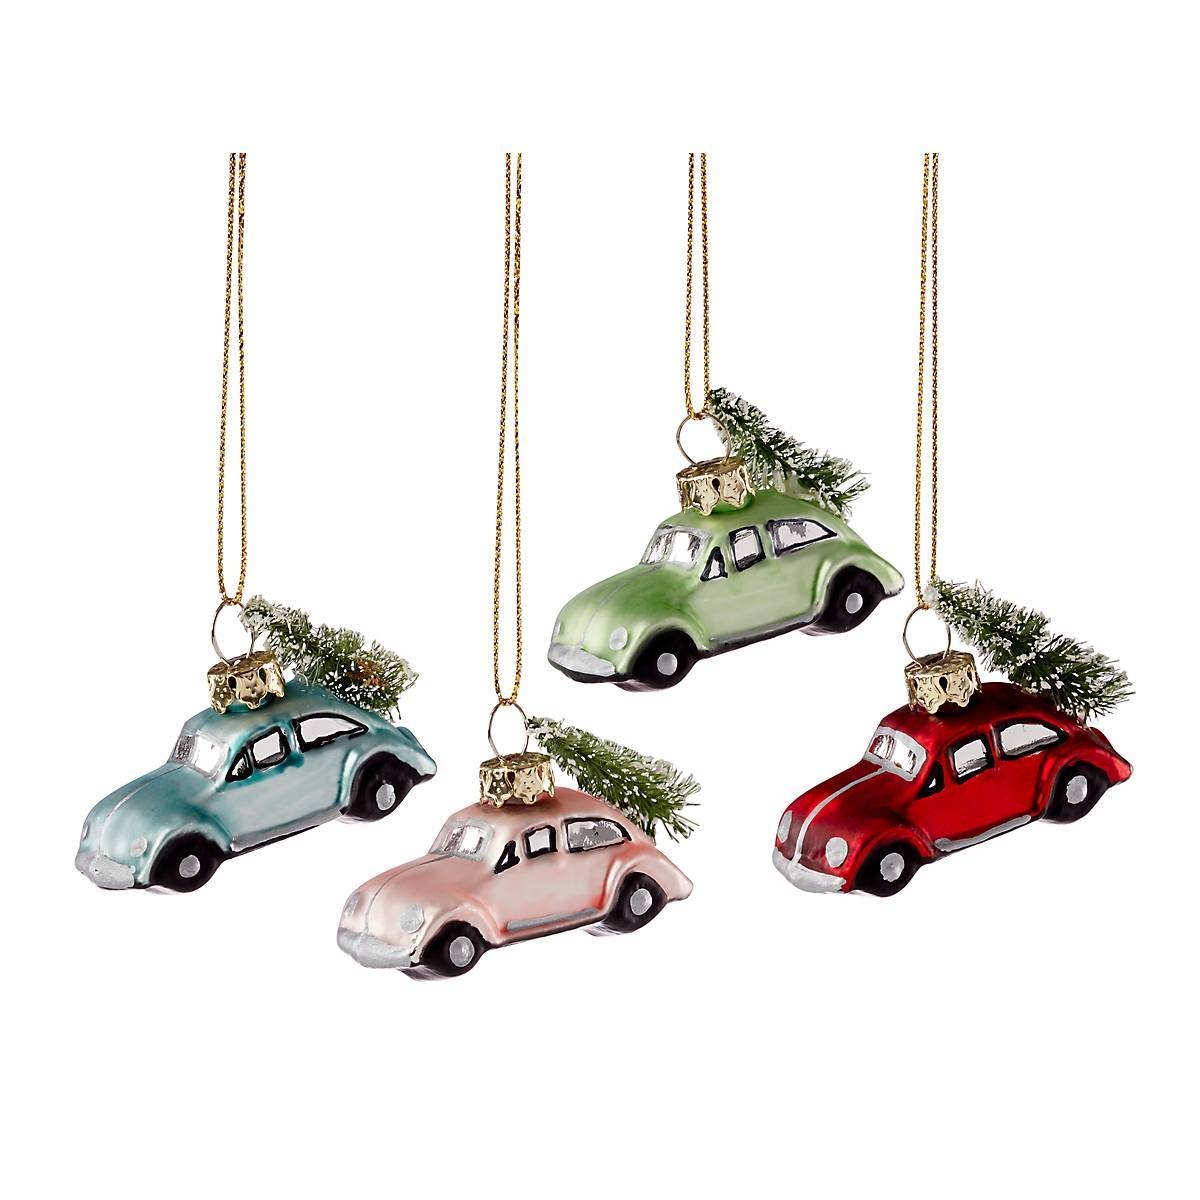 Mini Buggy 4-piece Ornament Set by Lenox -  https:// coloradodeals4u.com/product/mini-b uggy-4-piece-ornament-set-by-lenox/   … <br>http://pic.twitter.com/47eflG9YRU